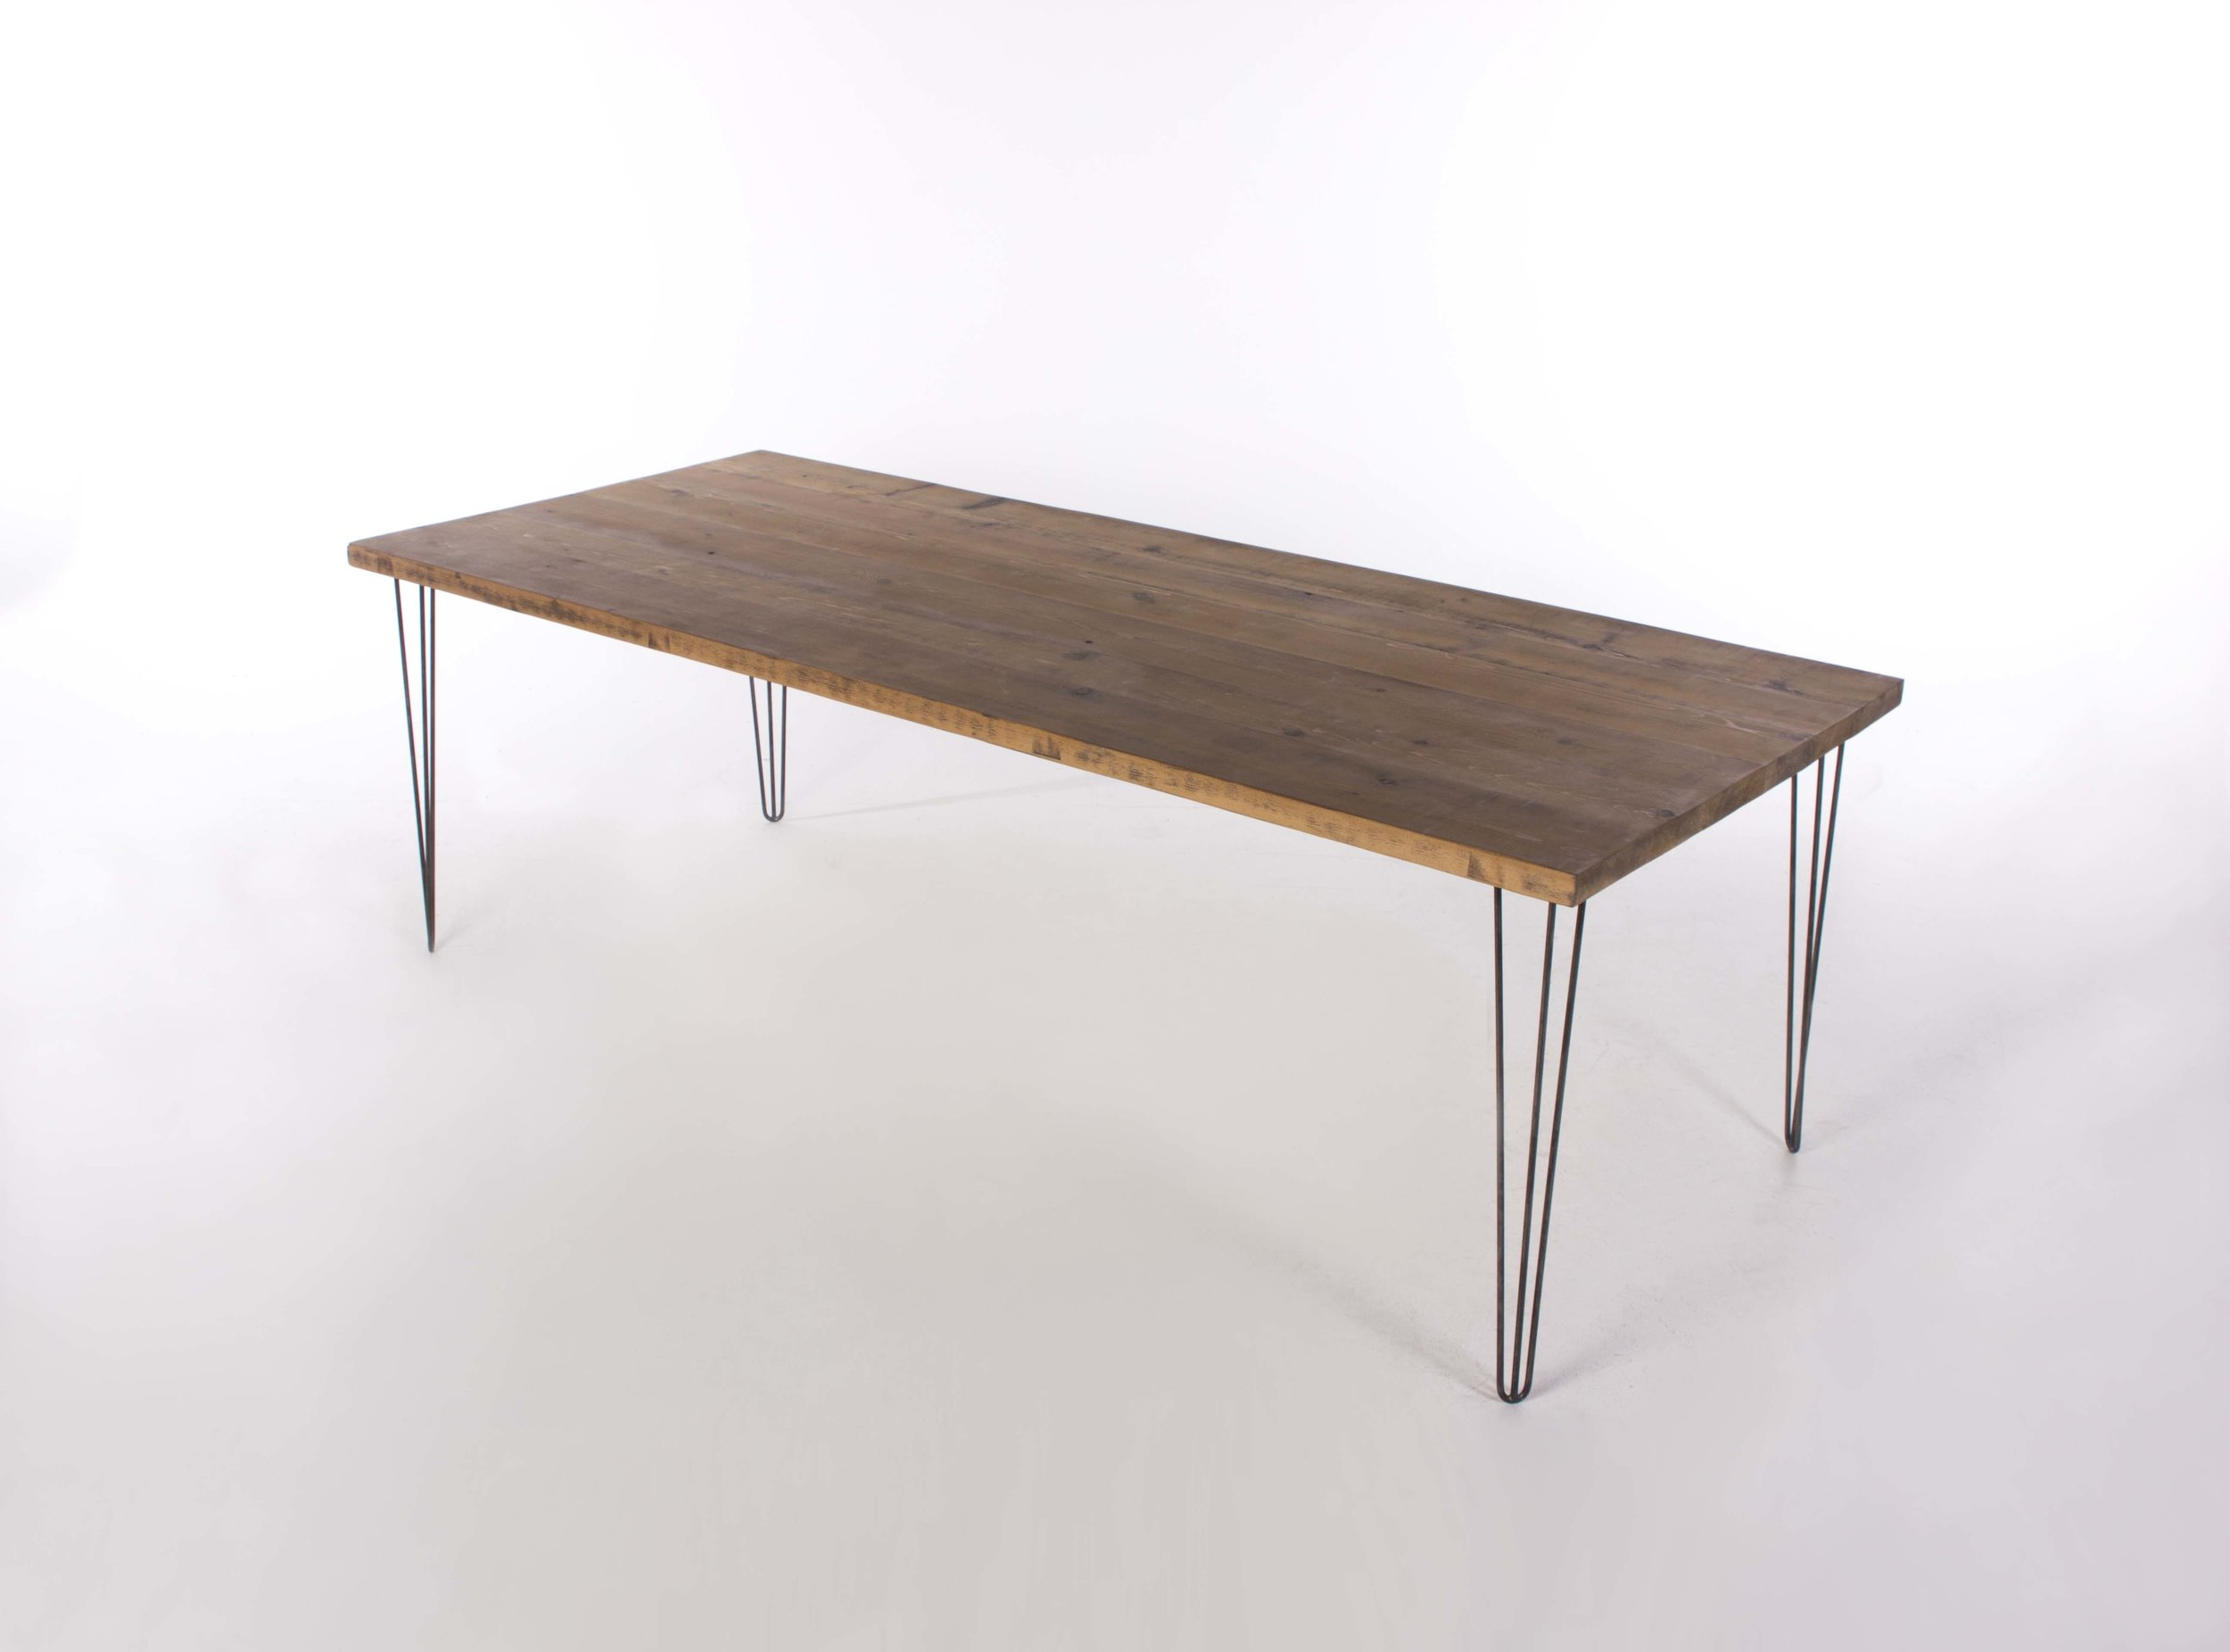 HALSTON HAIRPIN TABLE